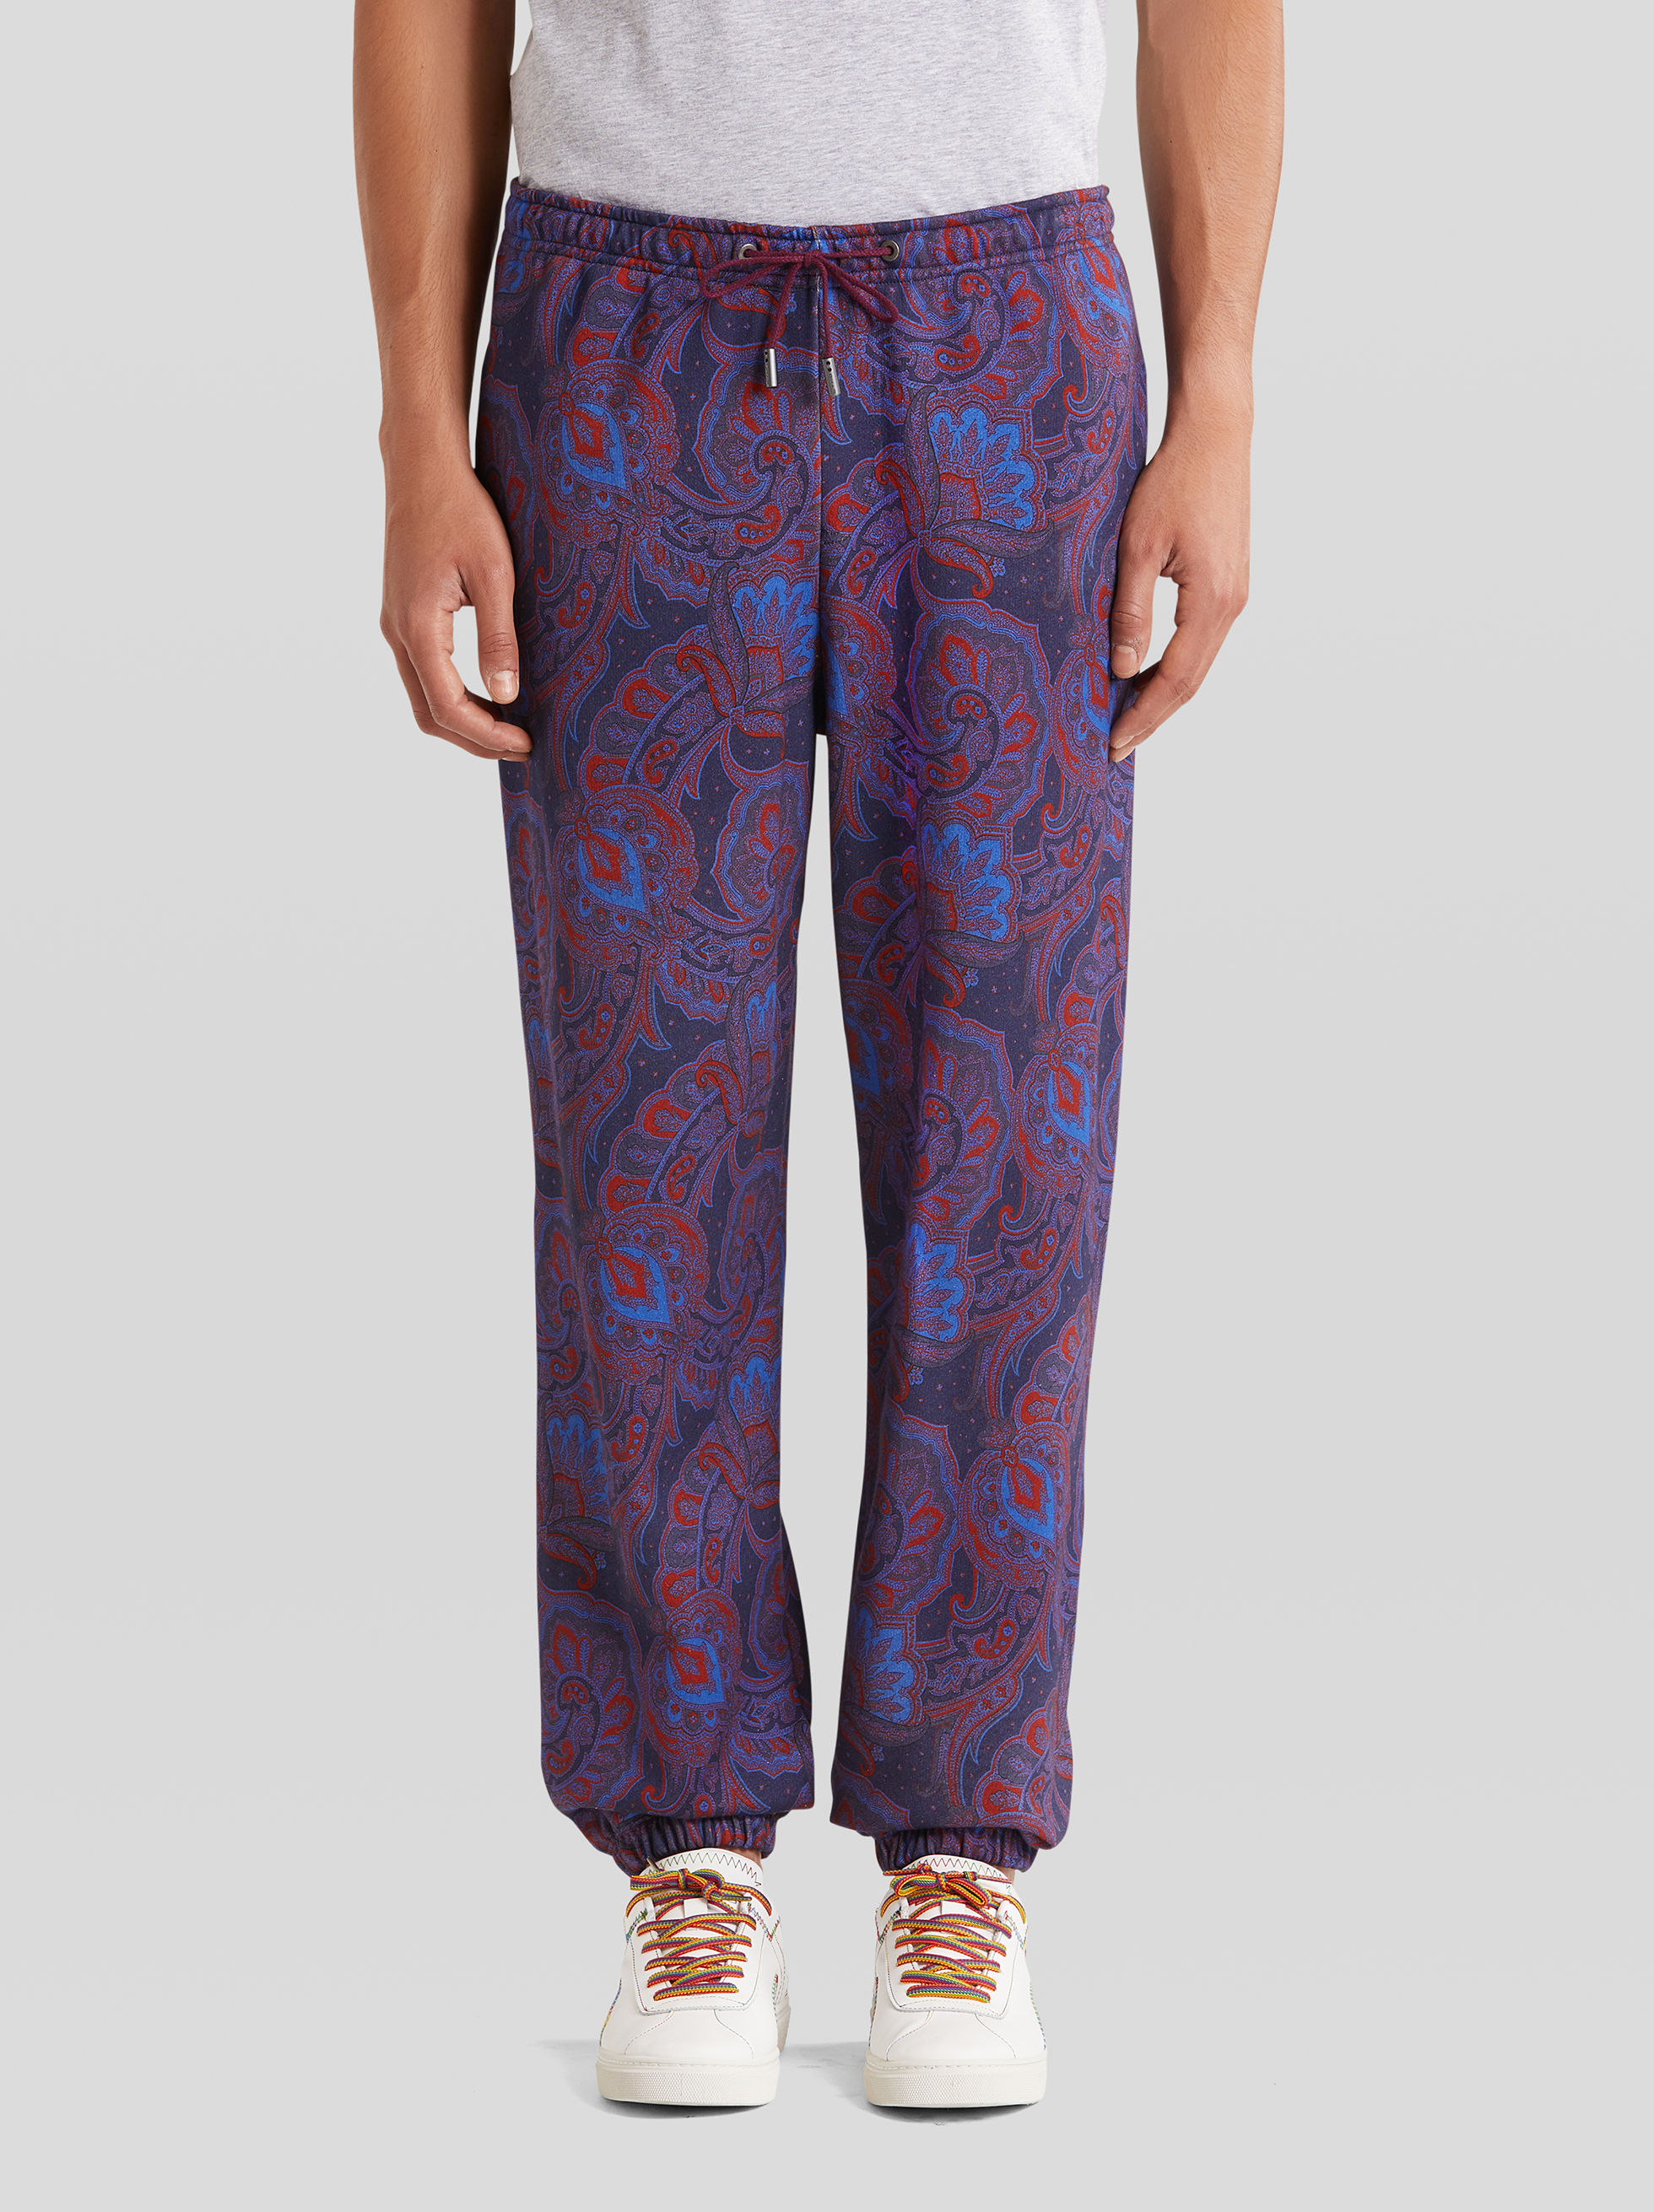 COTTON TROUSERS WITH PAISLEY PATTERNS